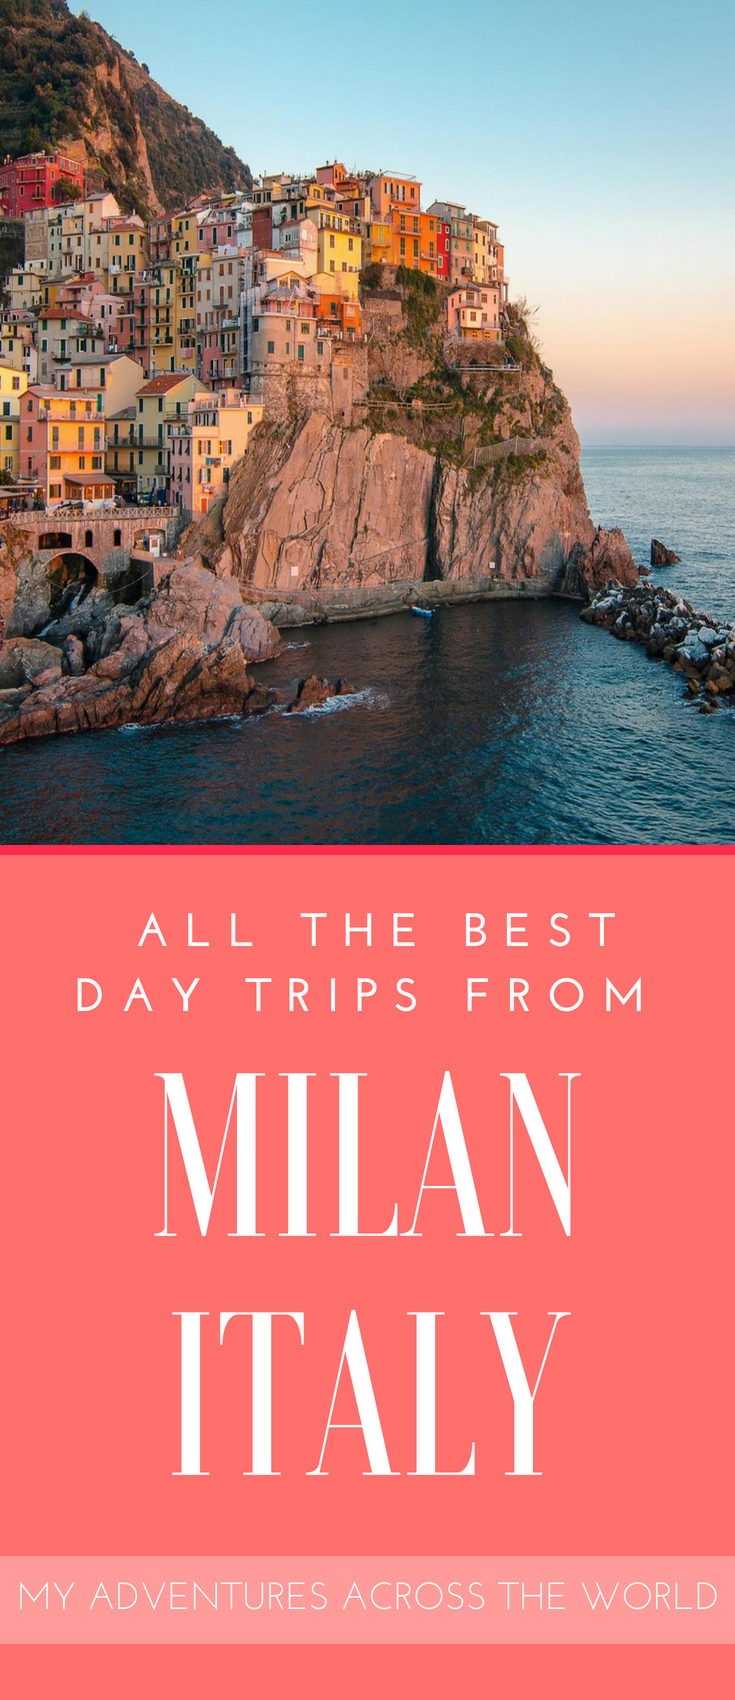 Milan, Italy, is one of the most vibrant cities in the country. Yet, it is nice to get out of town for some fun activities. Discover what are the 10 best Milan day trips | Italy | Milan | #italy #travellblog via @clautavani